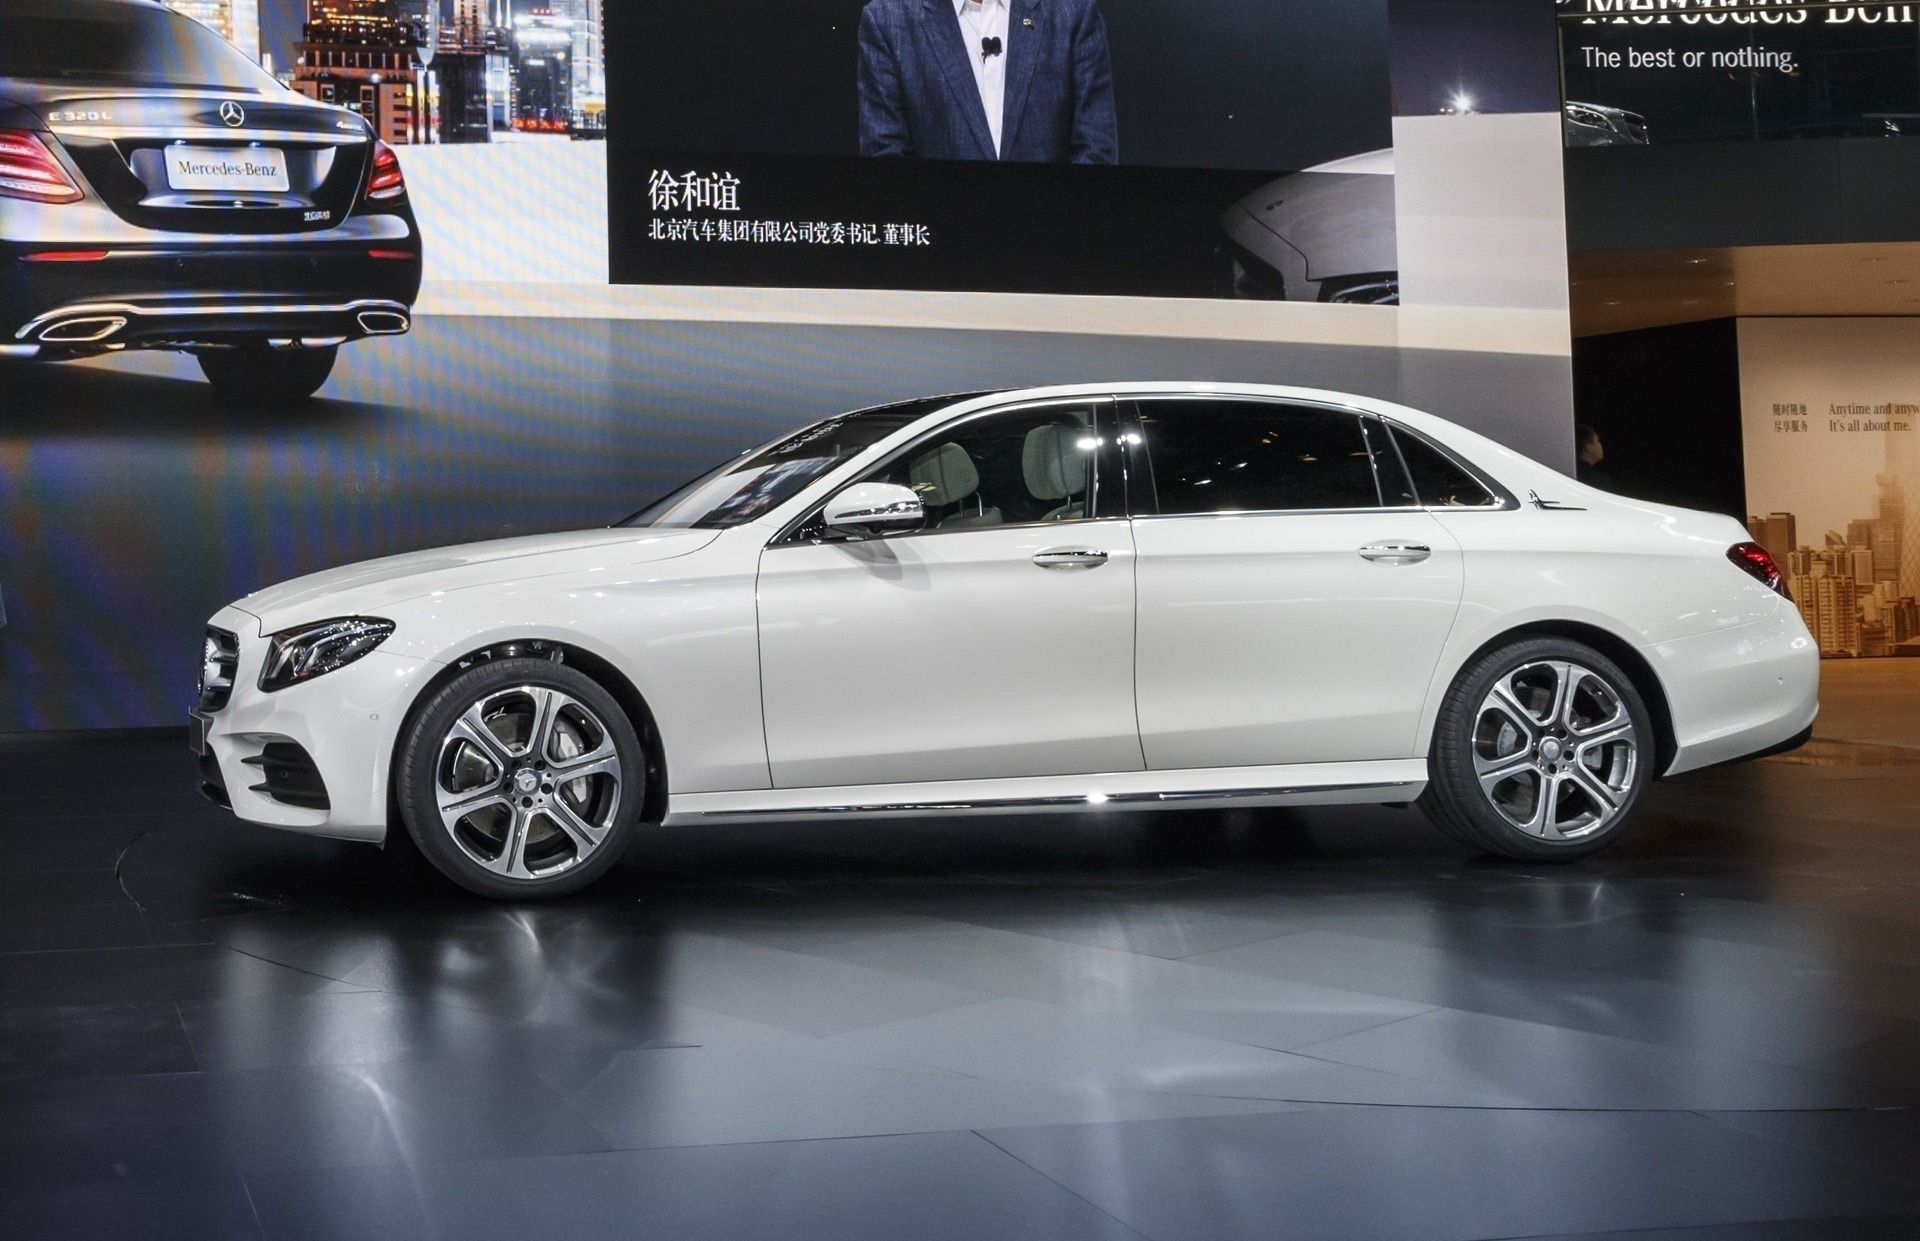 The Mercedes 2019 E Class Price Price And Release Date Check More At Http Carbisnis2020 Club New Merce Mercedes Benz E350 Mercedes Benz E550 Mercedes E Class